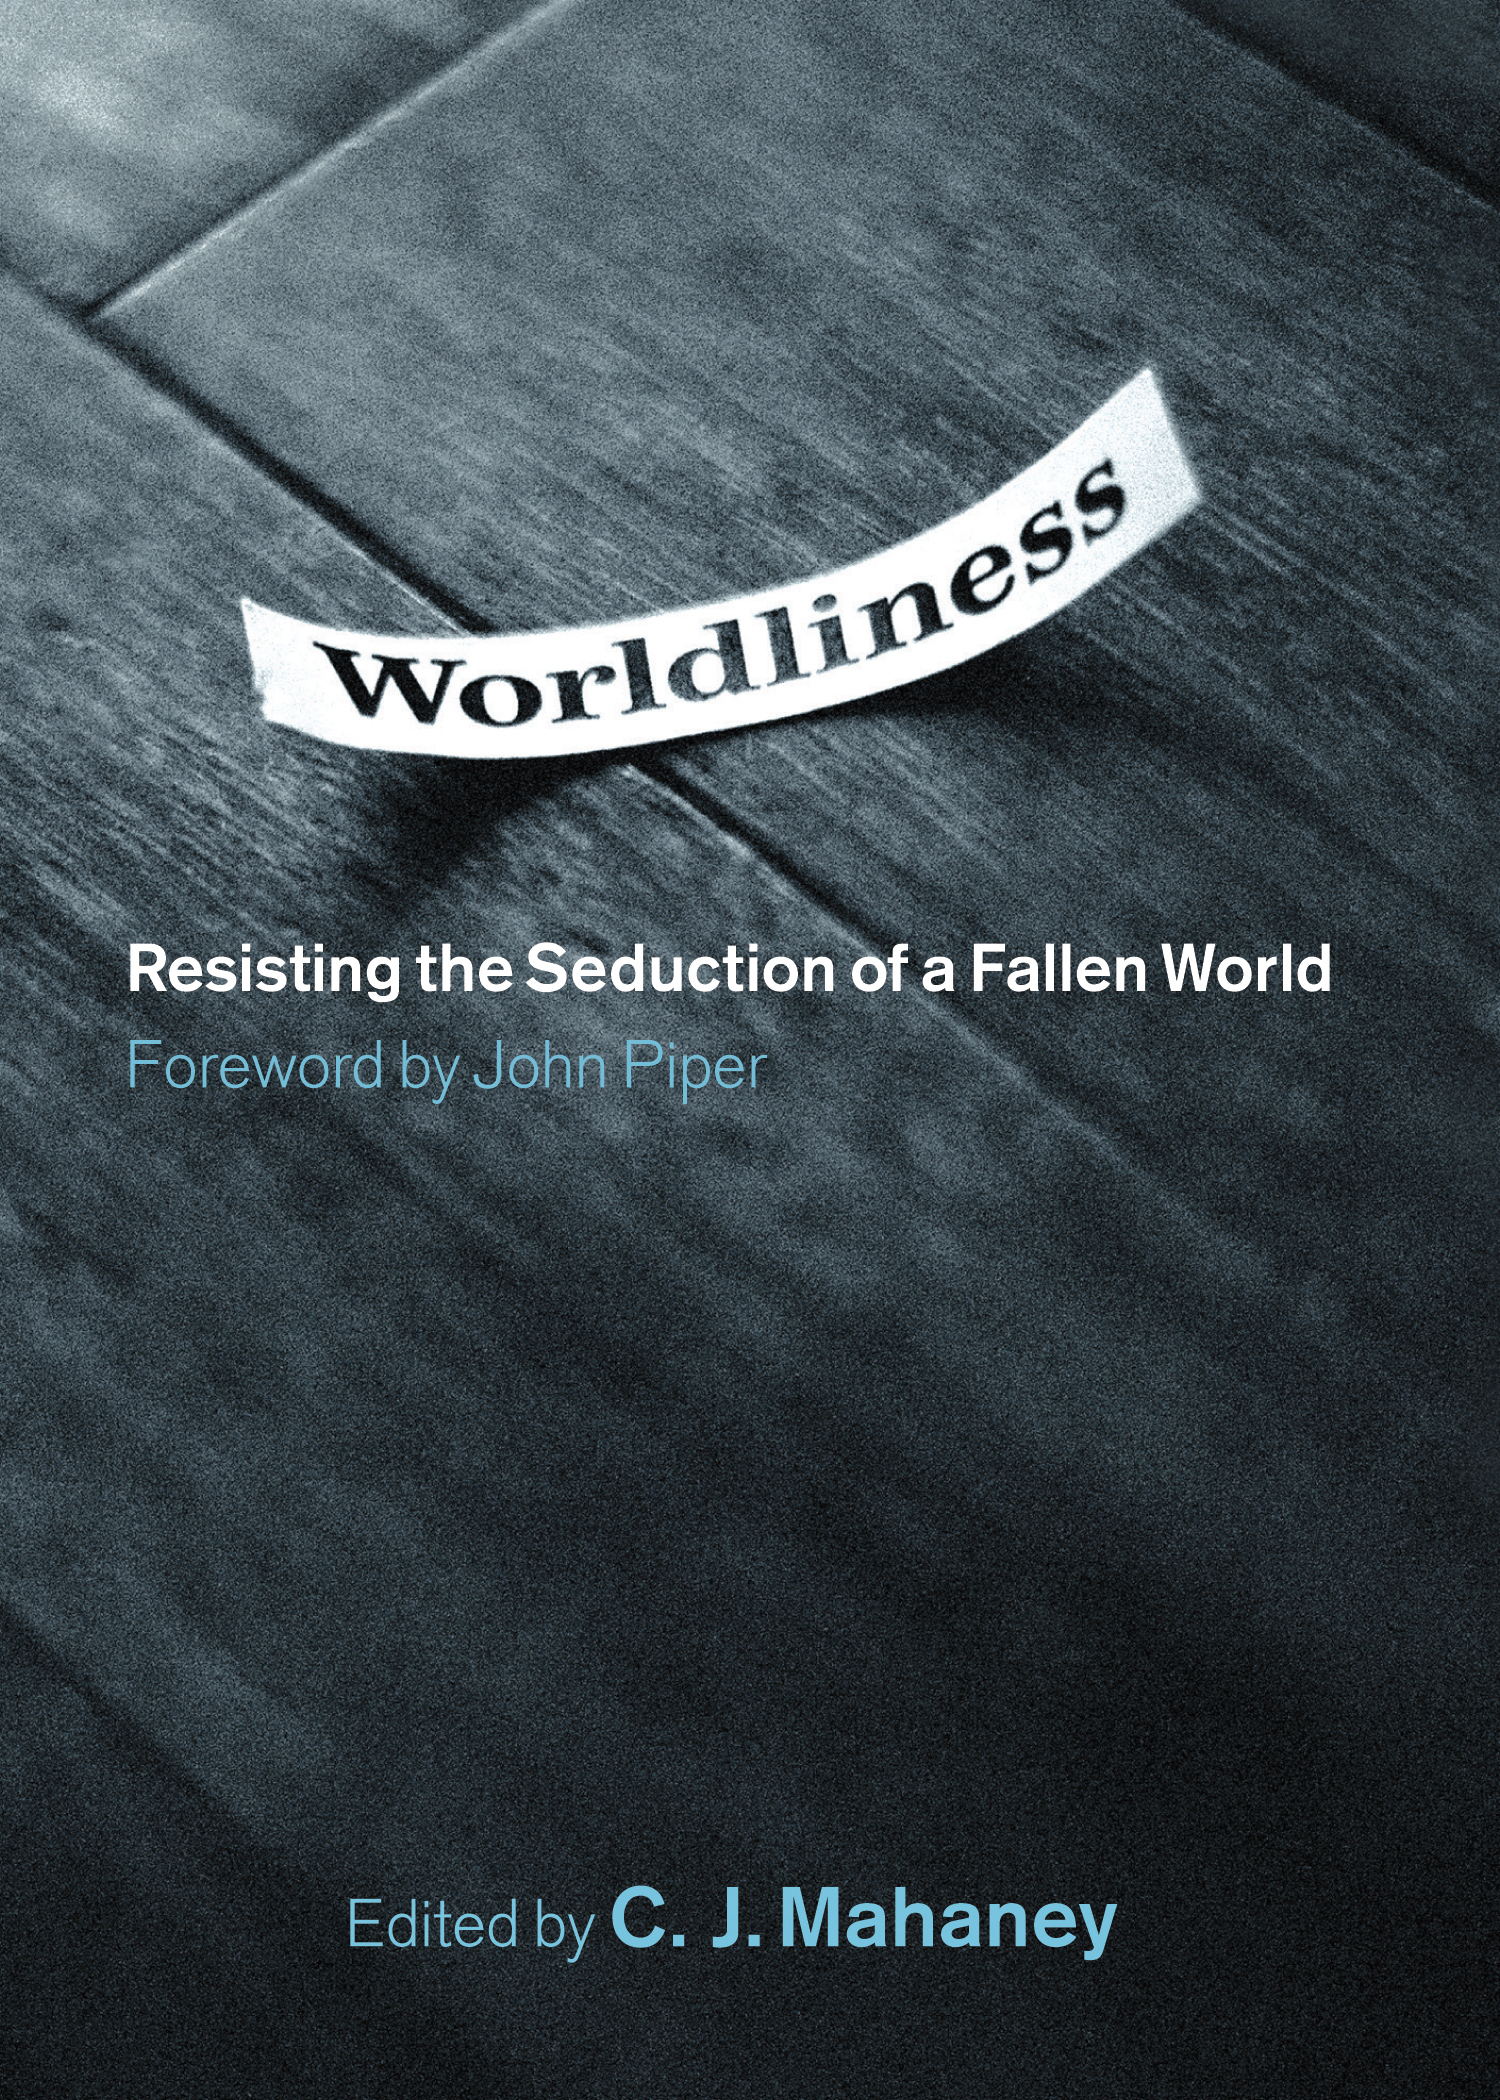 Worldliness (Foreword by John Piper) Resisting the Seduction of a Fallen World